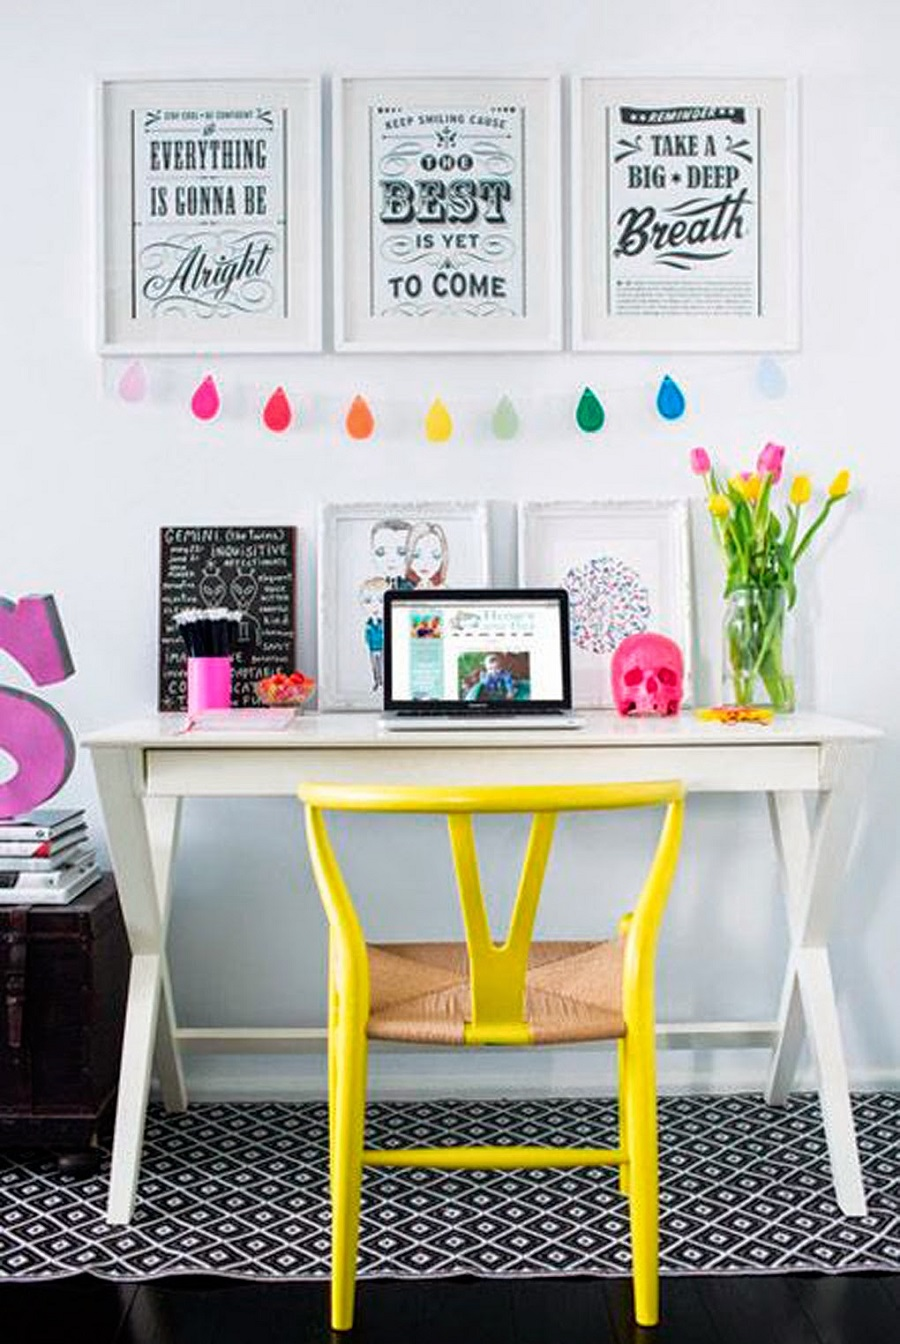 AD-Top-Lively-Rainbow-Decor-Ideas-That-Will-Cheer-You-Up-06